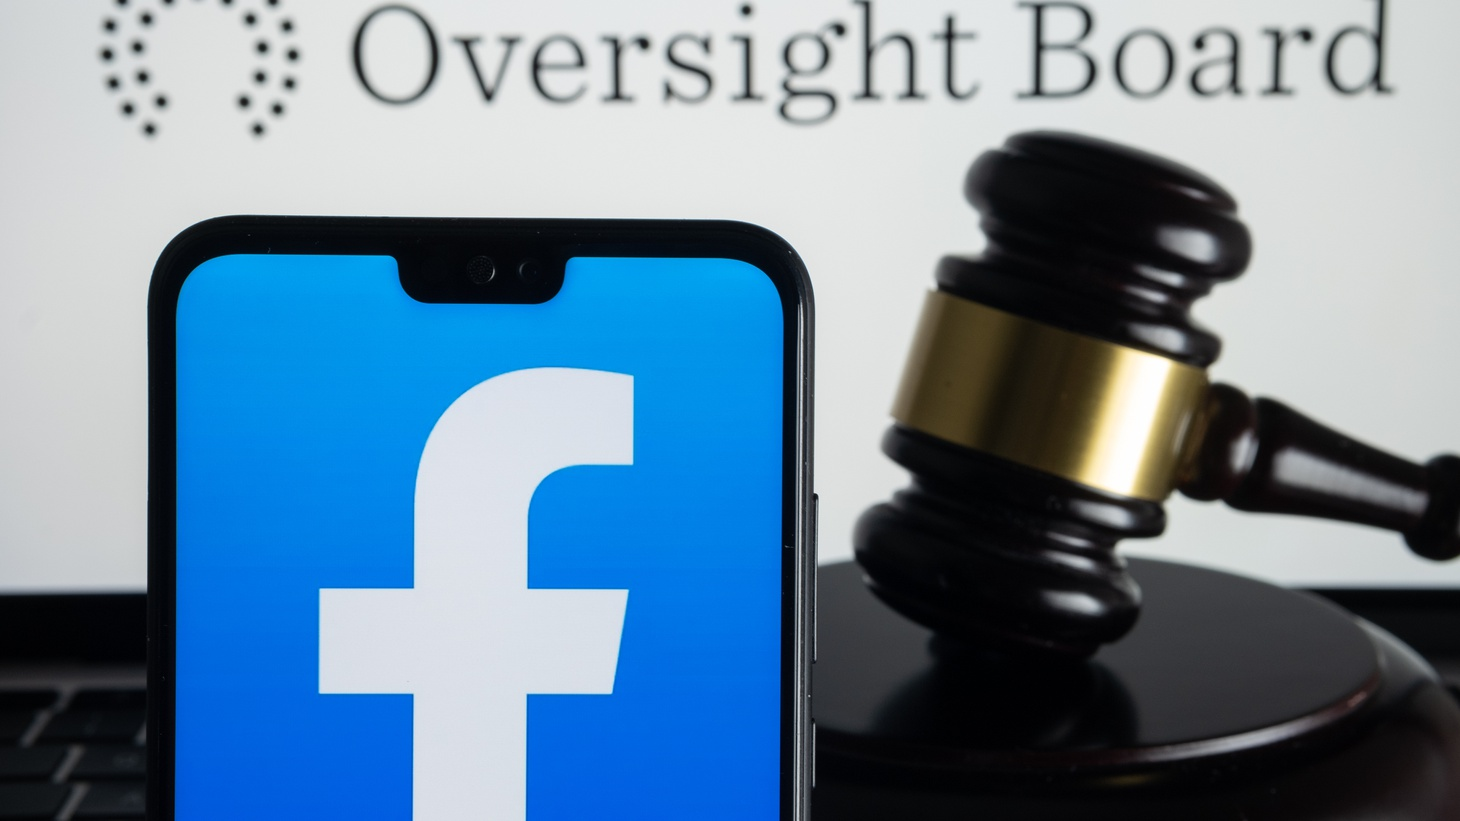 Facebook's Oversight Board today upheld the social media company's decision to ban Donald Trump after the January 6, 2021 insurrection at the U.S. Capitol.